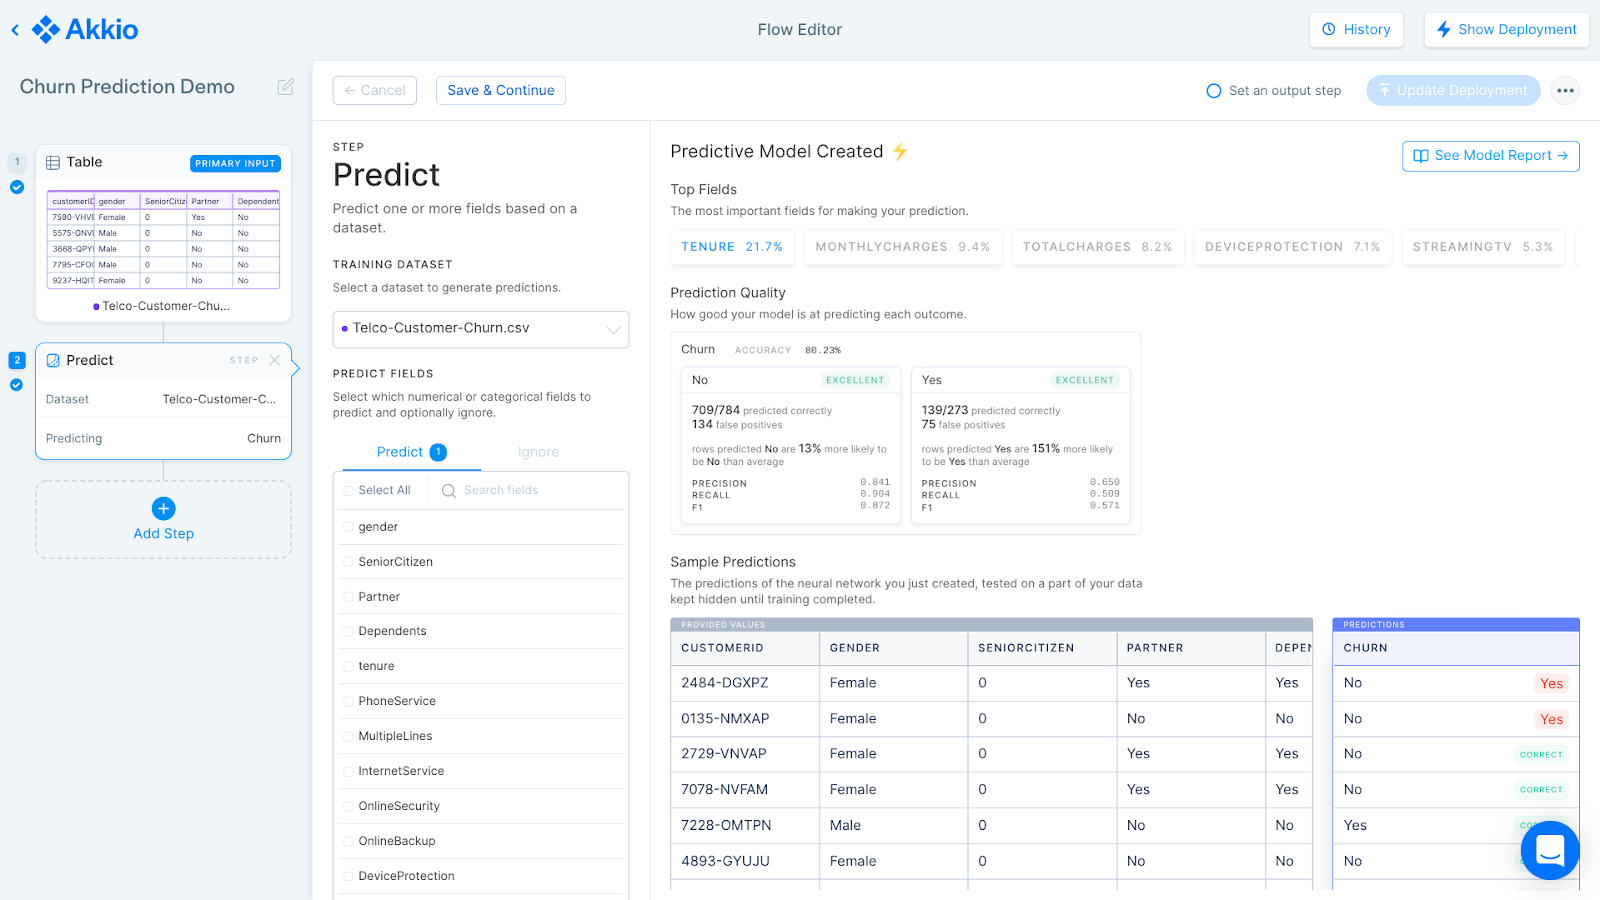 A screenshot of the Akkio Flow showing a predictive model for churn with an accuracy over 80%.